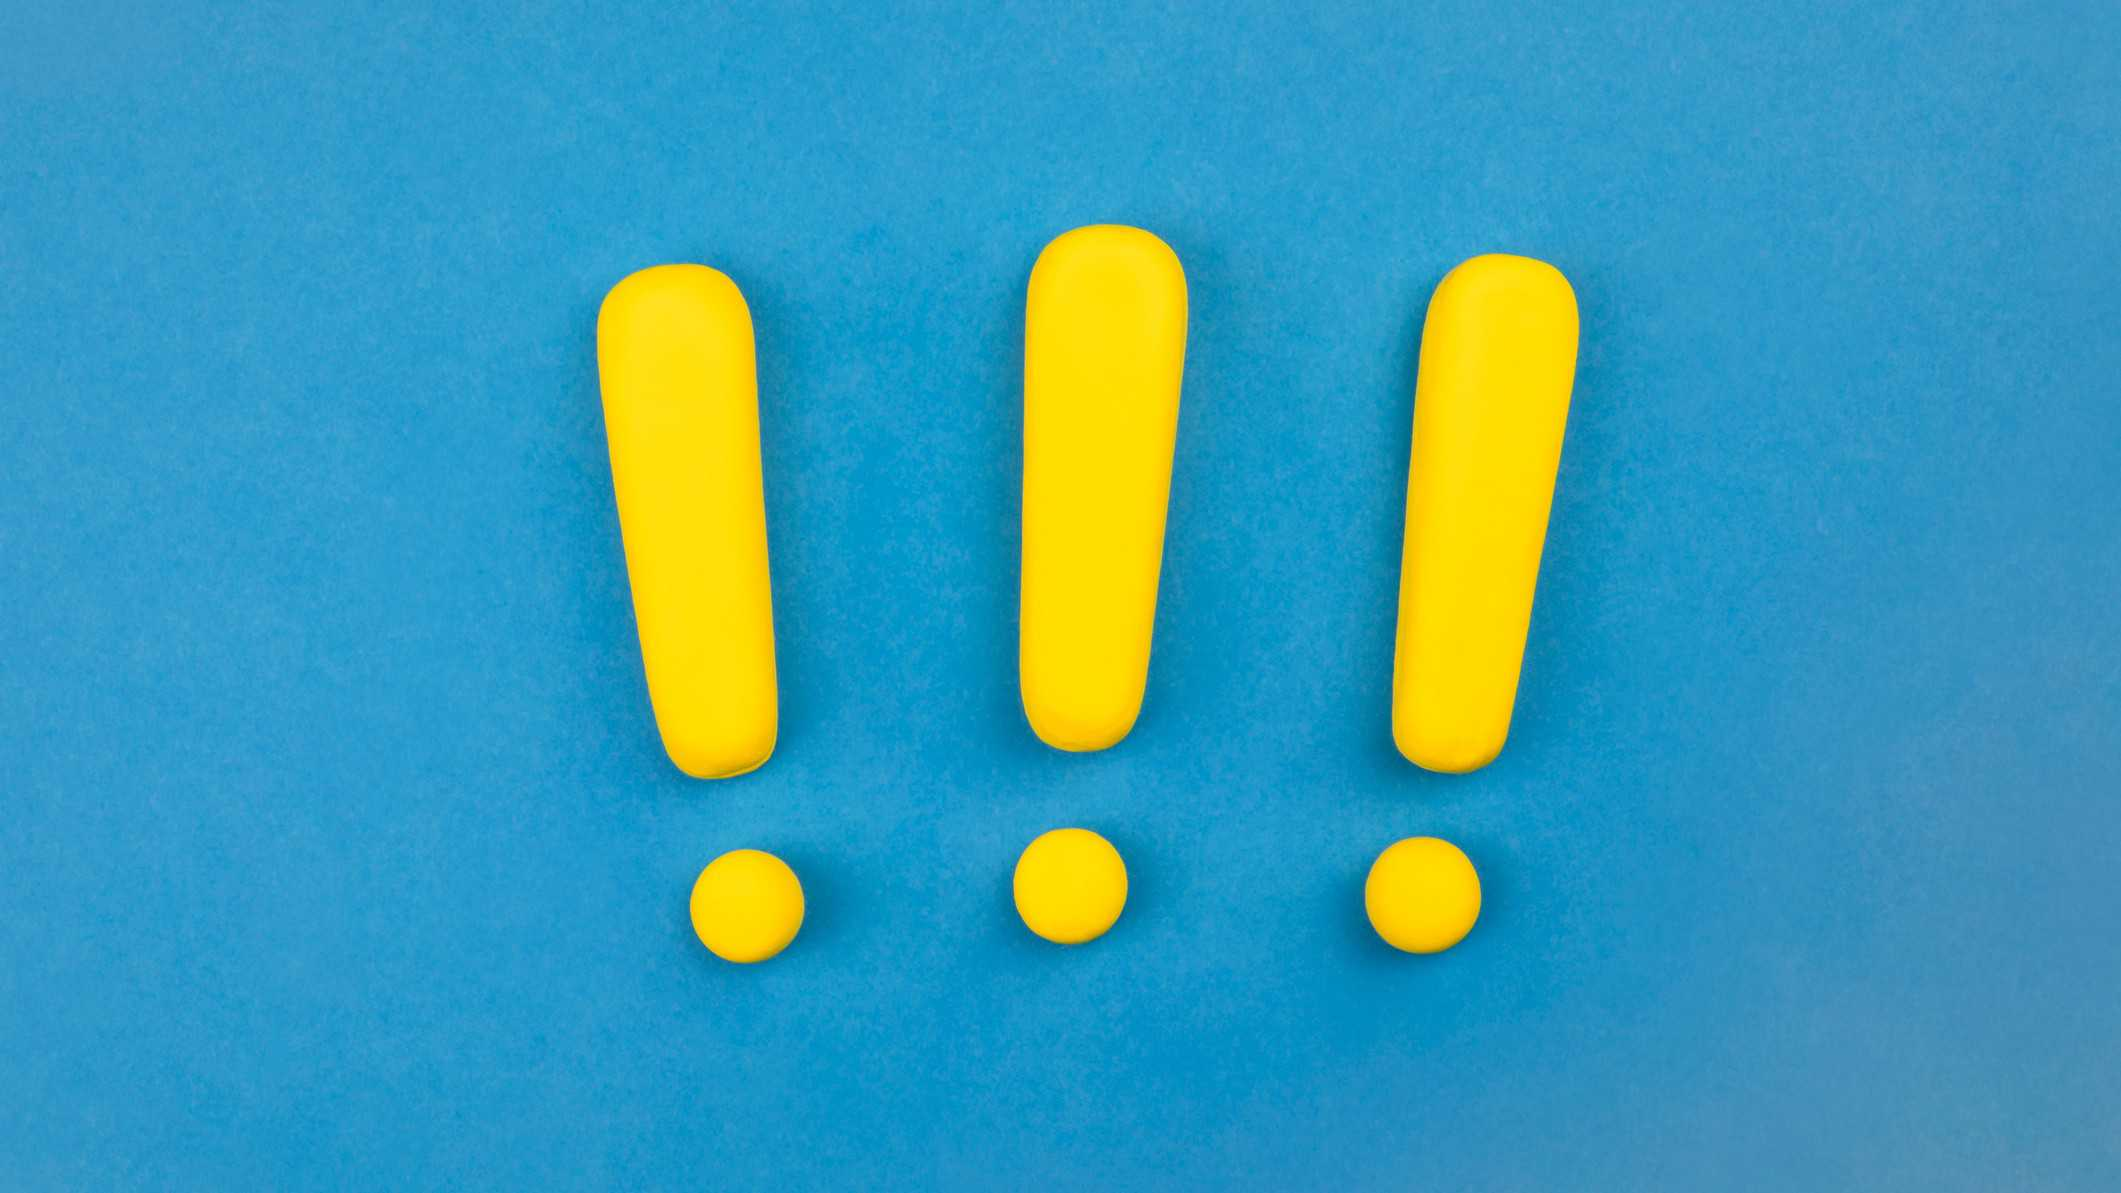 three yellow exclamation marks on blue background